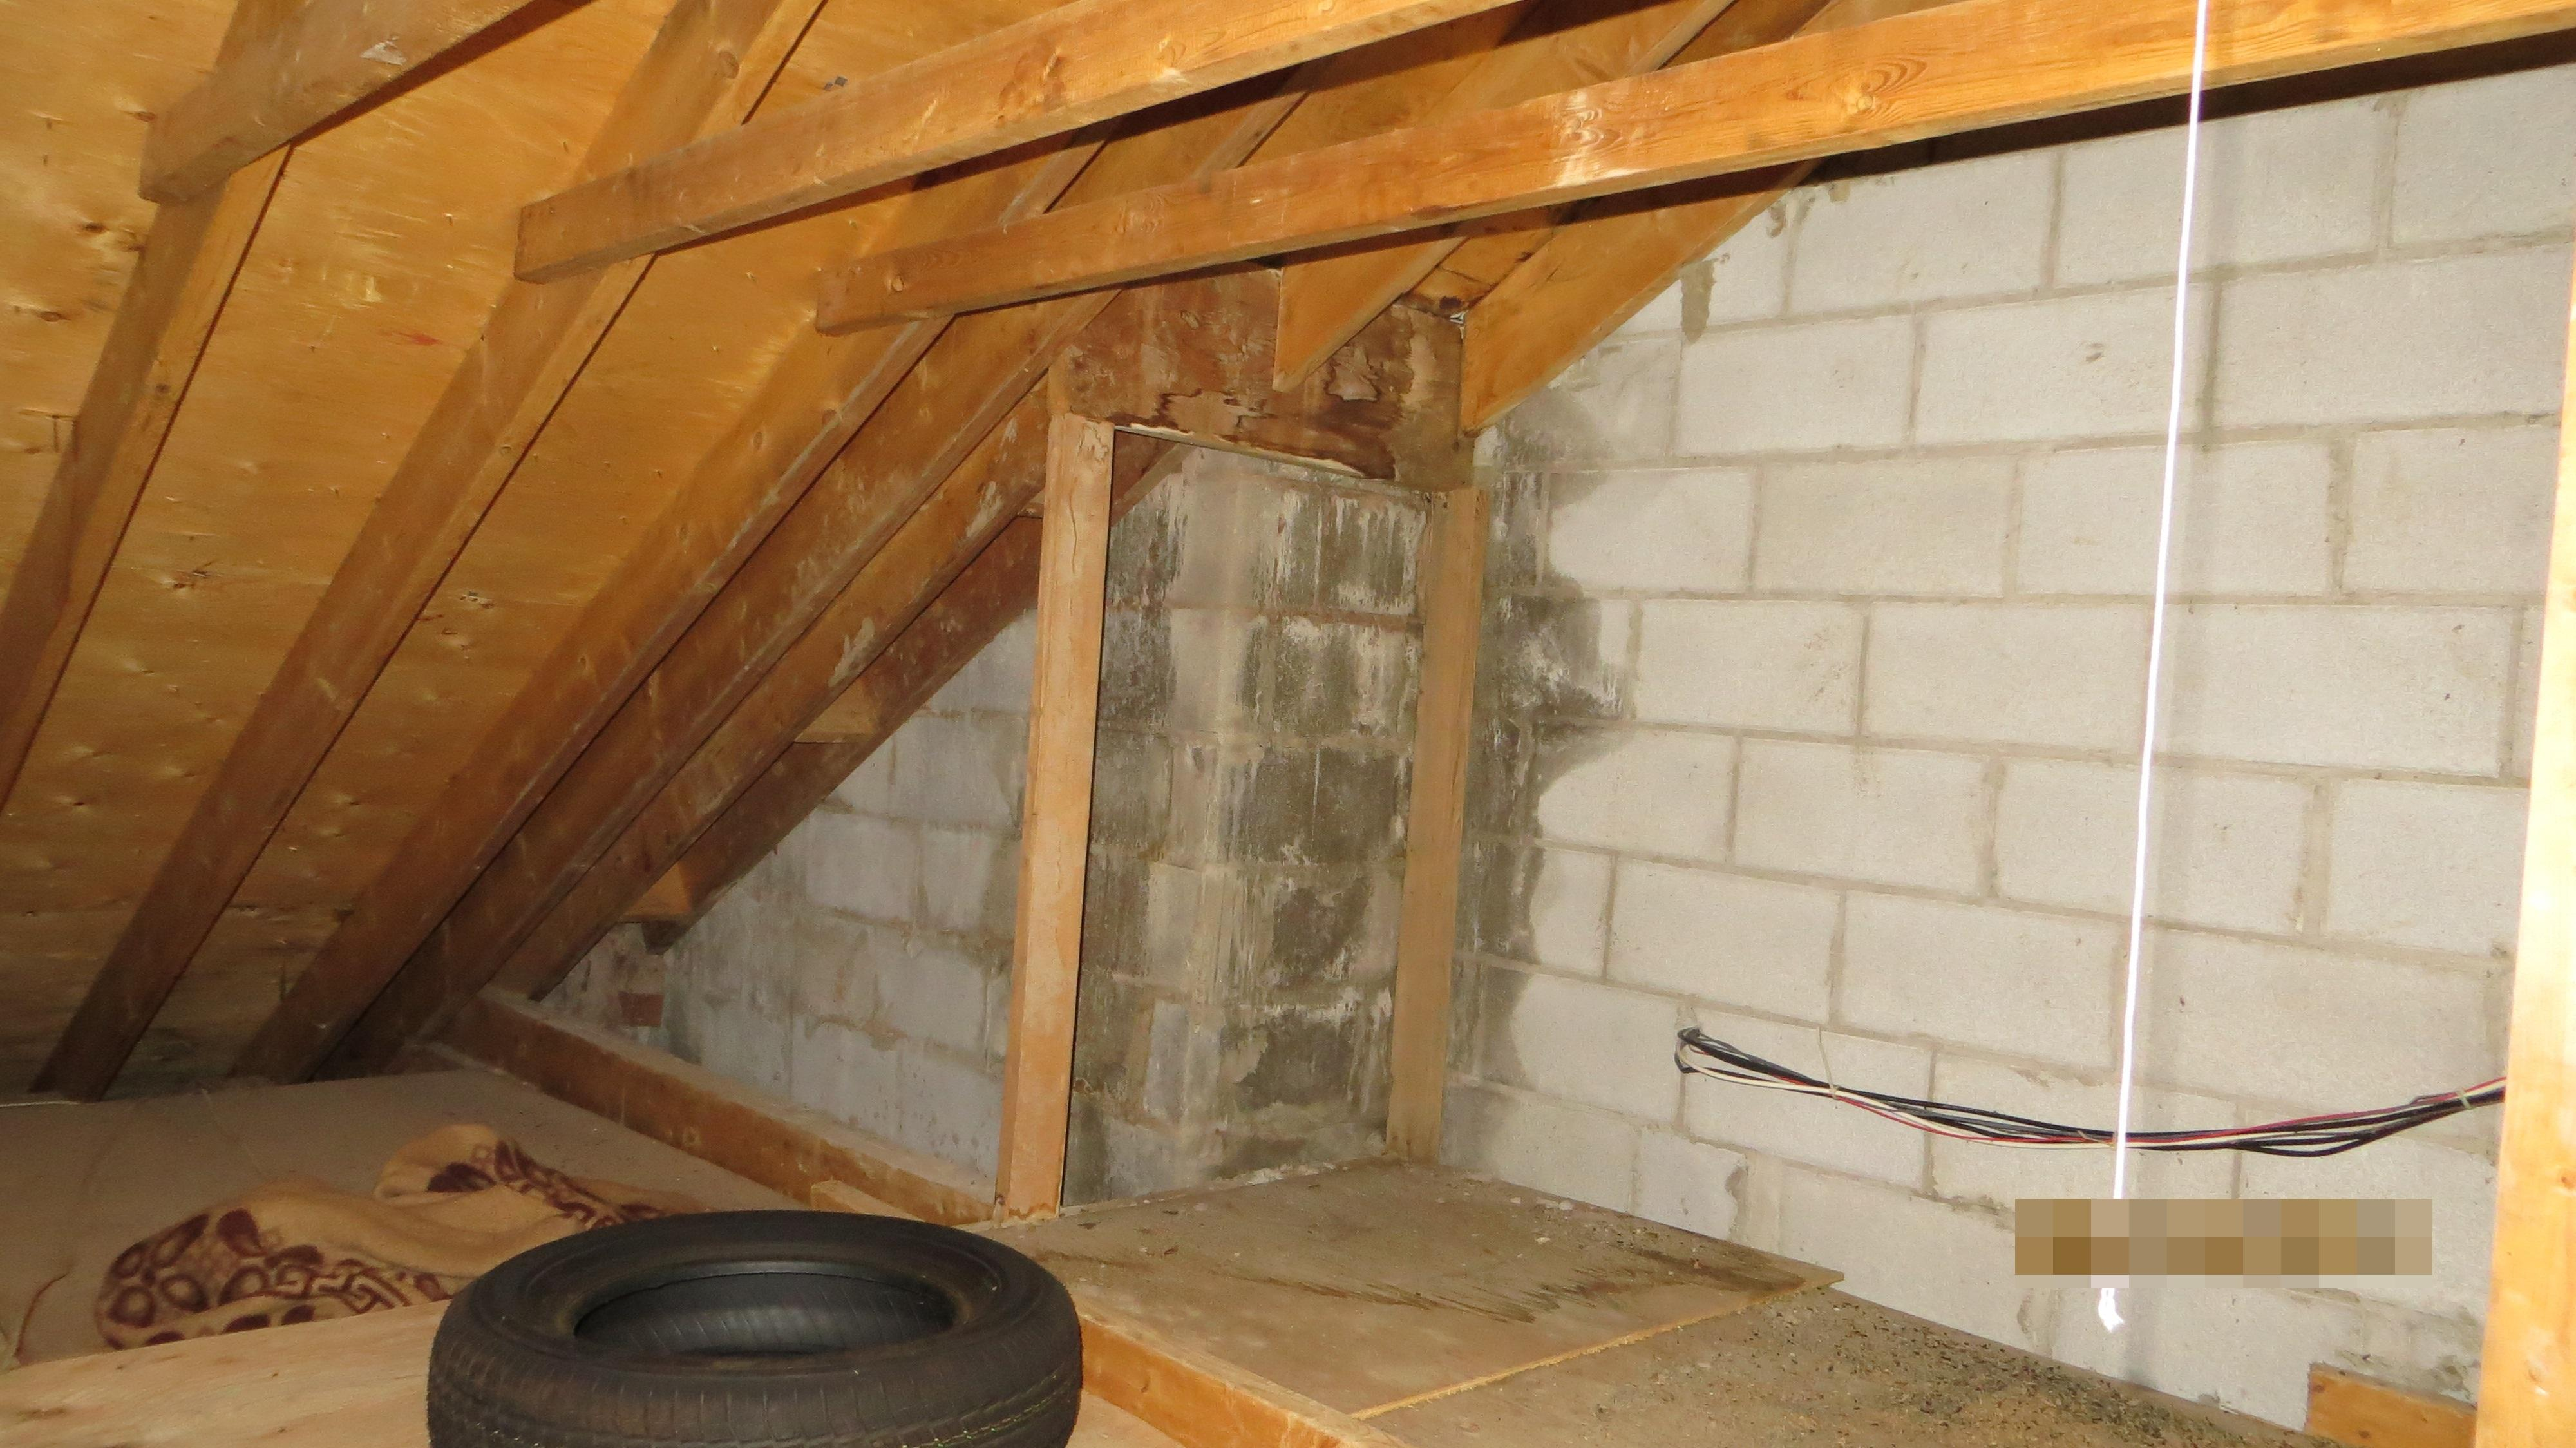 Leaks through chimney